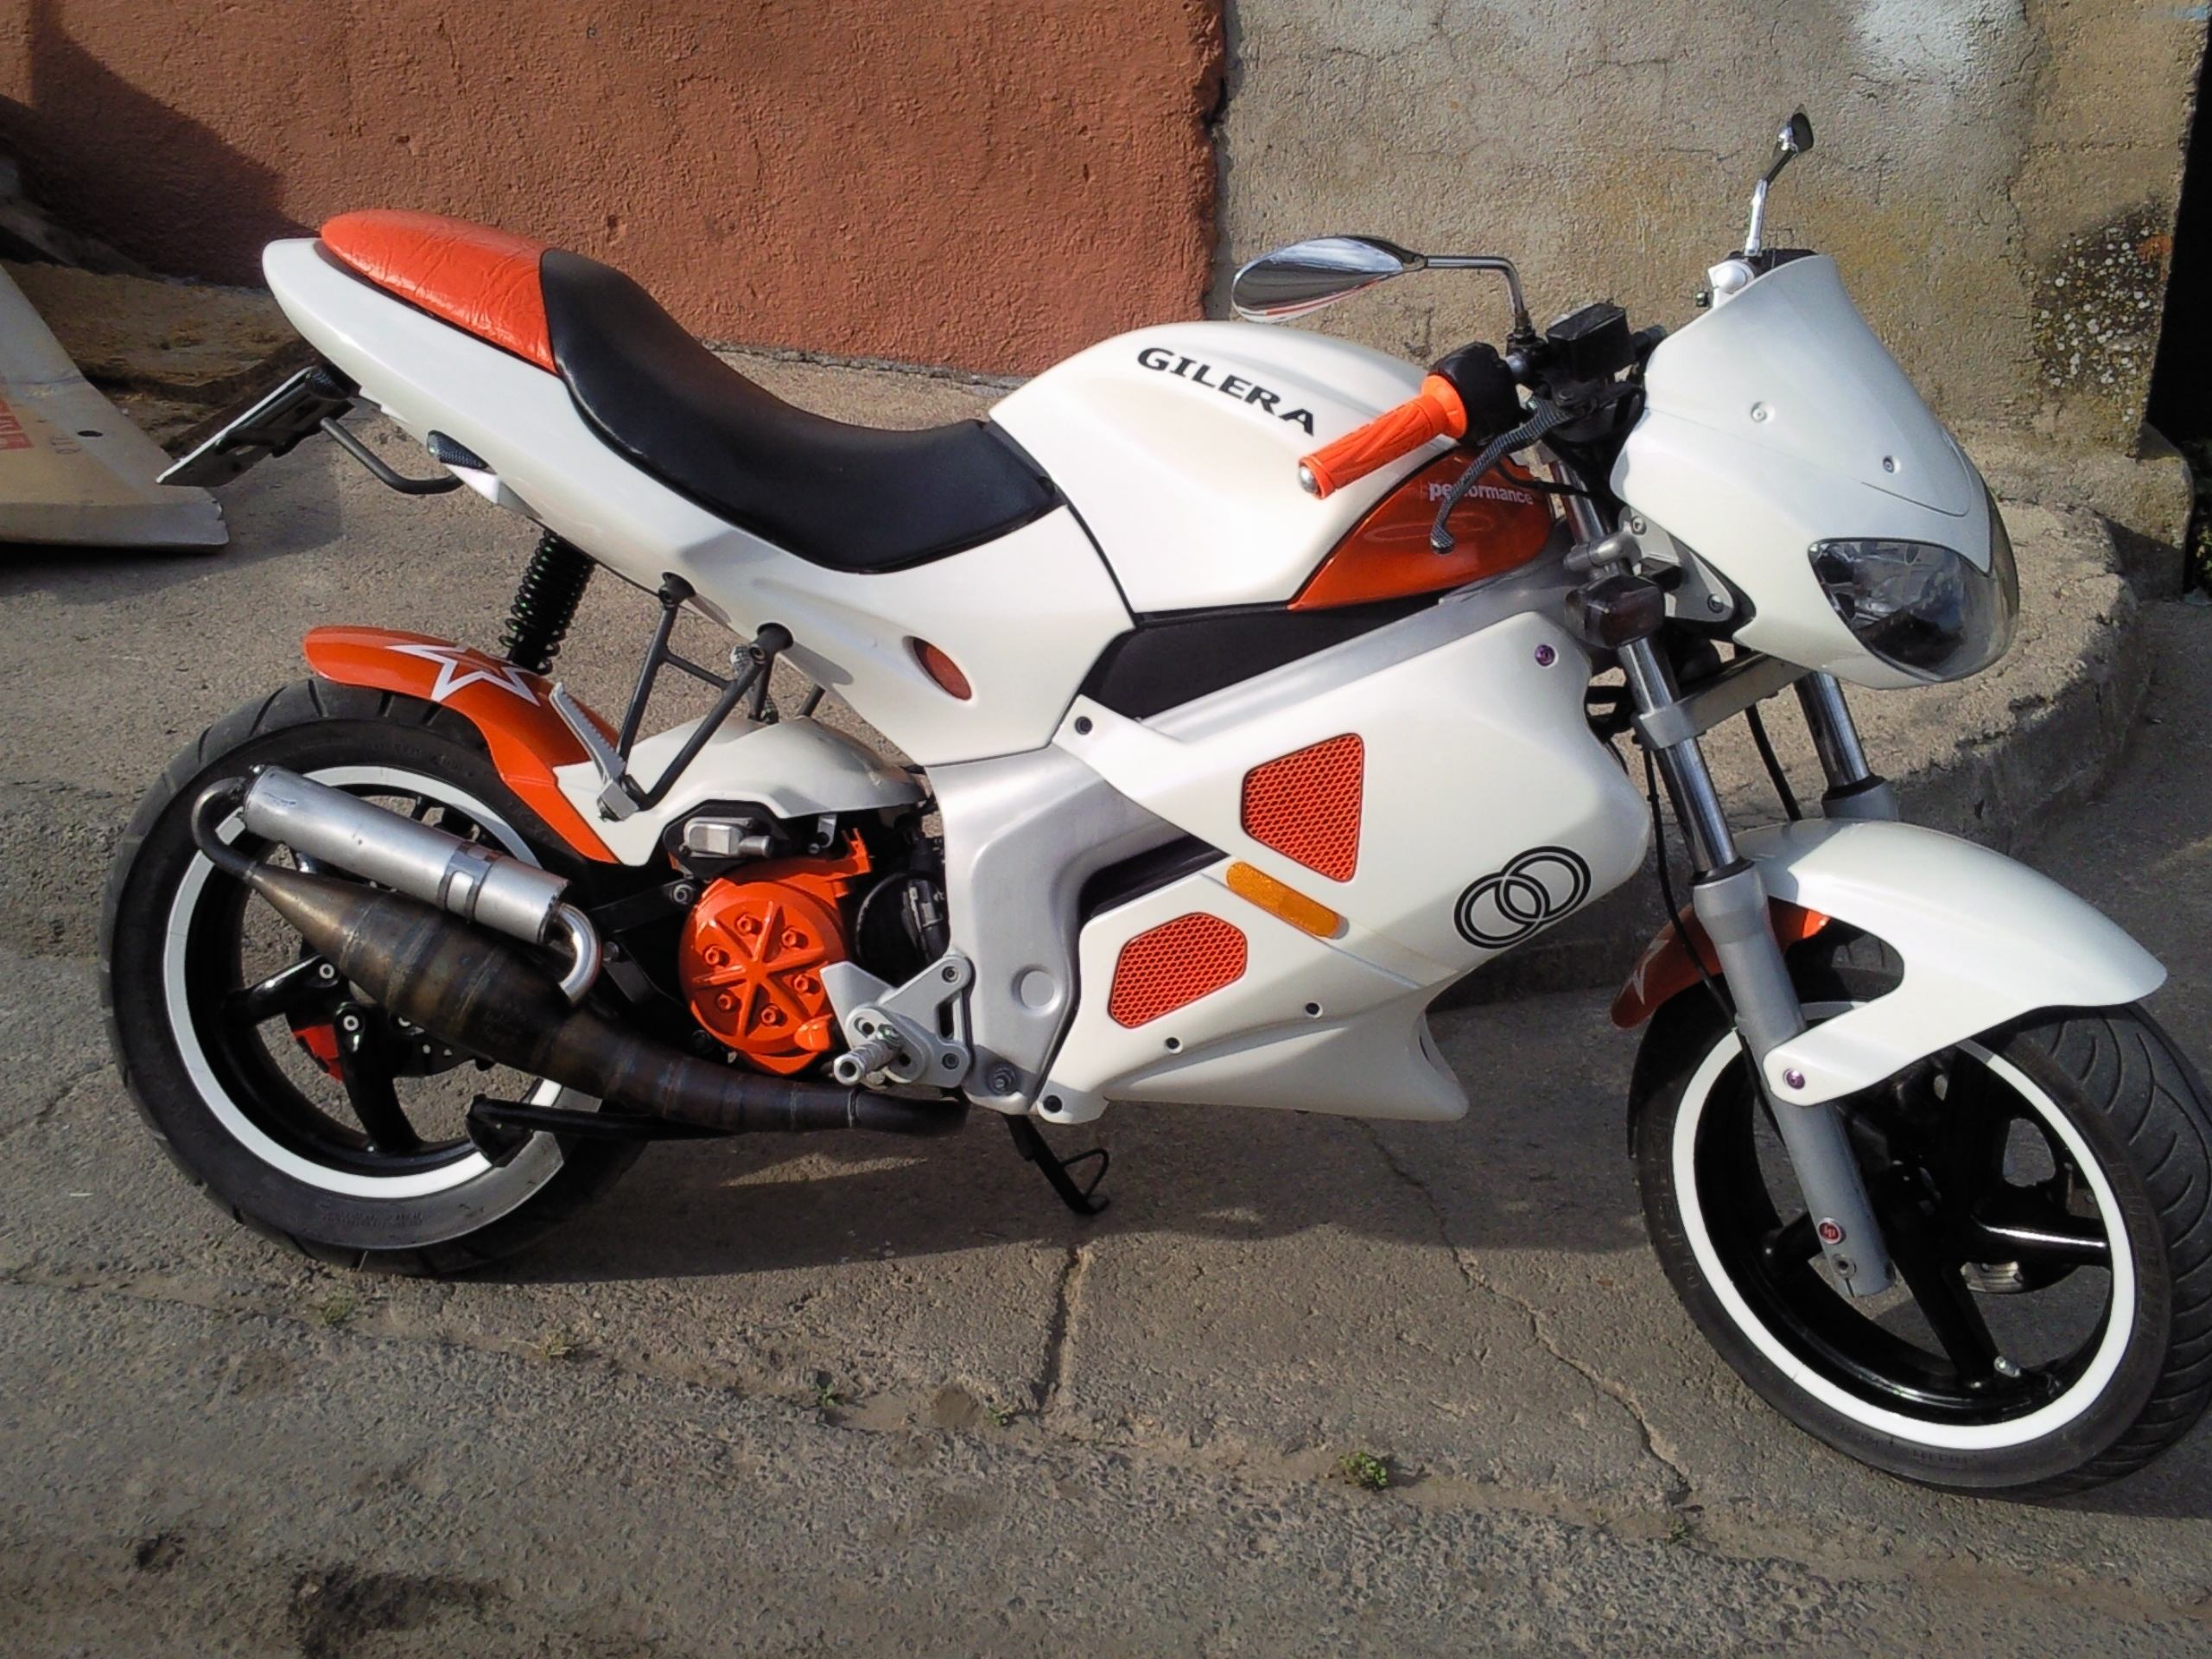 Gilera DNA 125 2002 images #96065